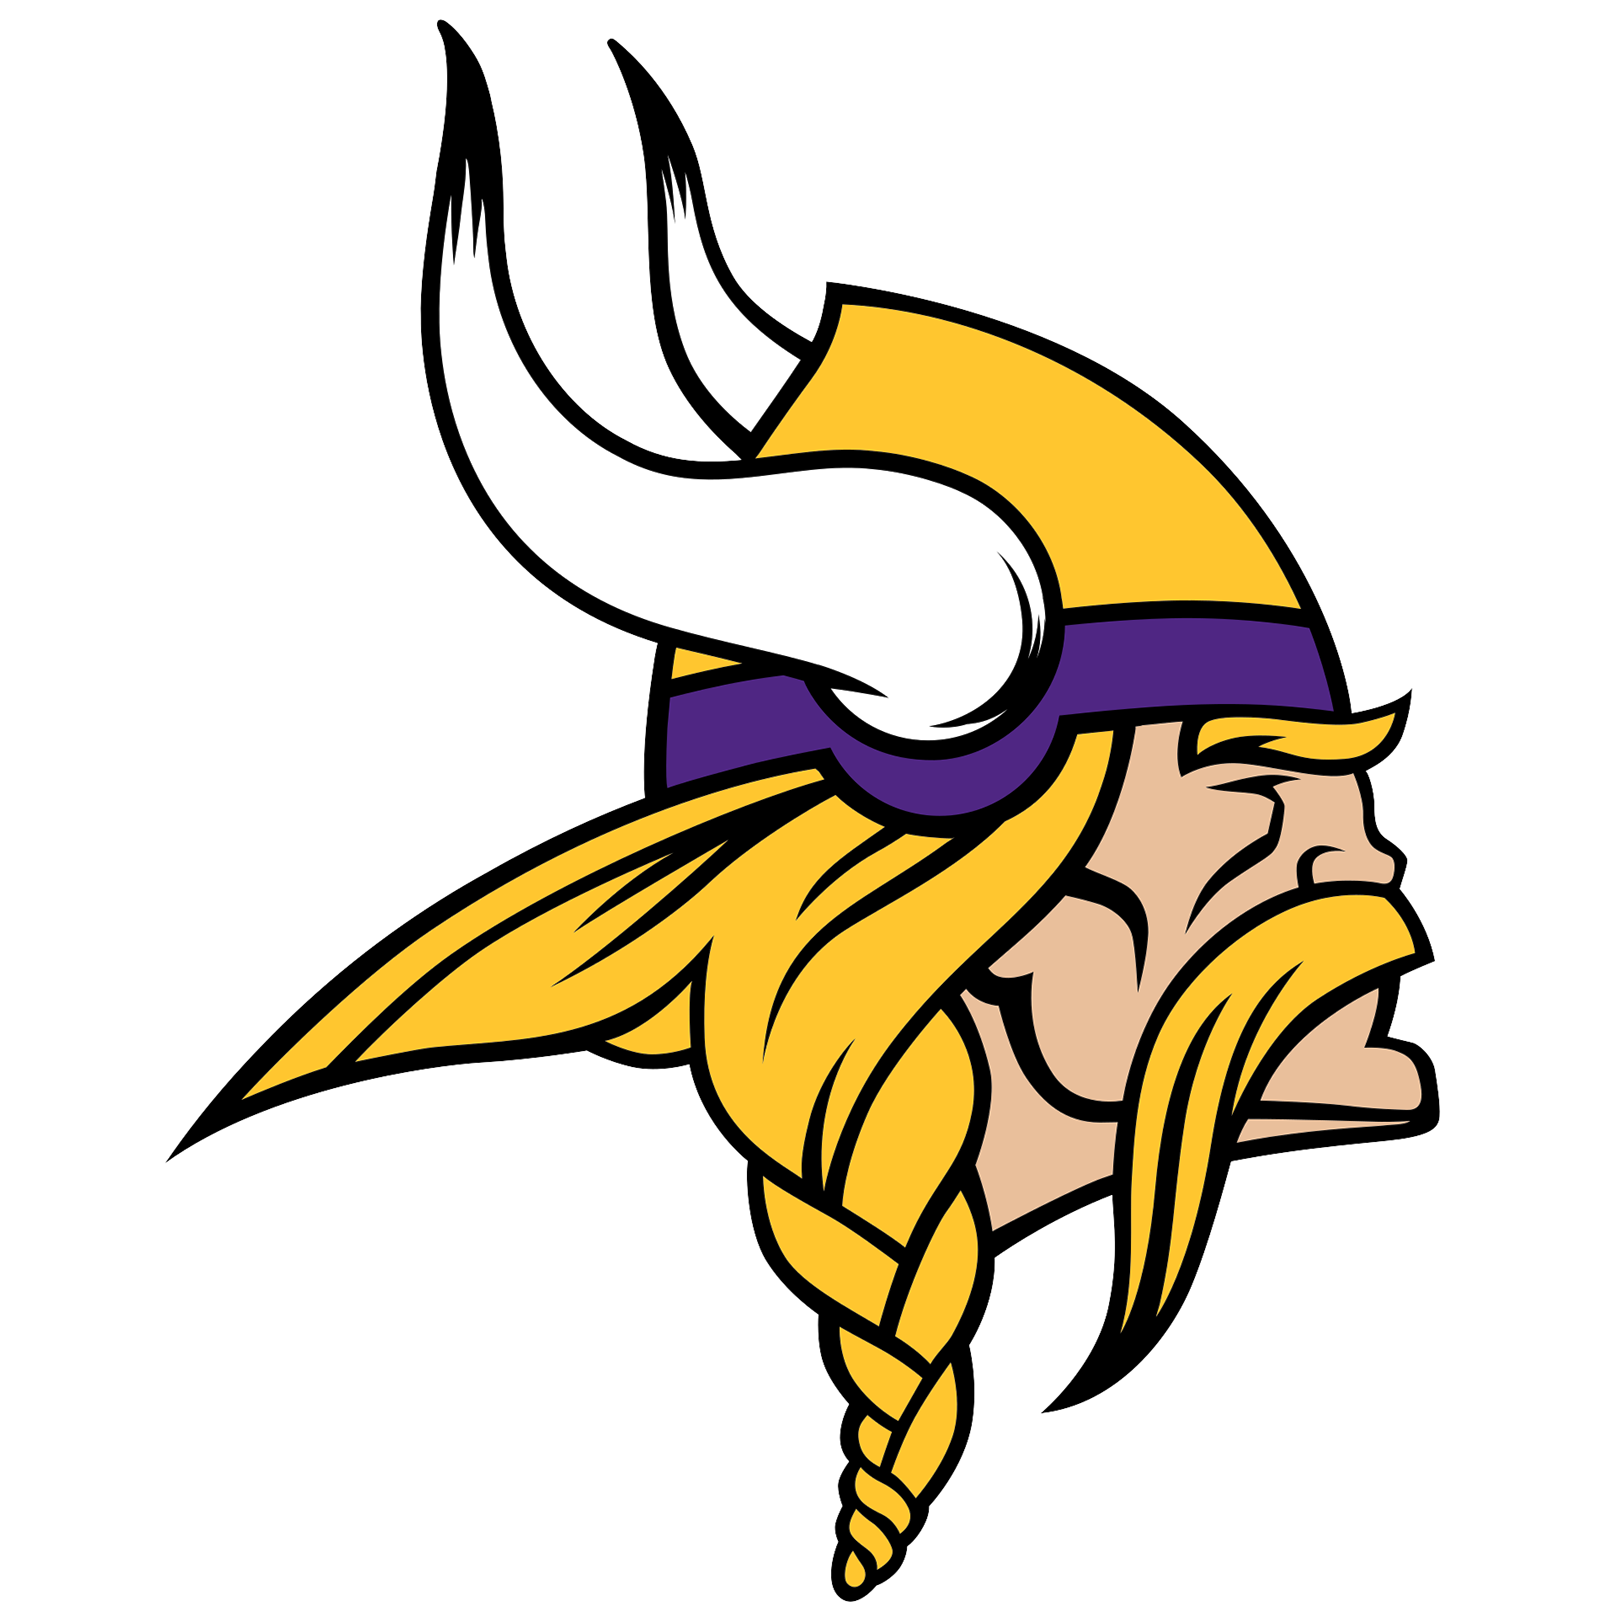 Car And Their Logos >> Minnesota Vikings Logo, Minnesota Vikings Symbol, Meaning, History and Evolution